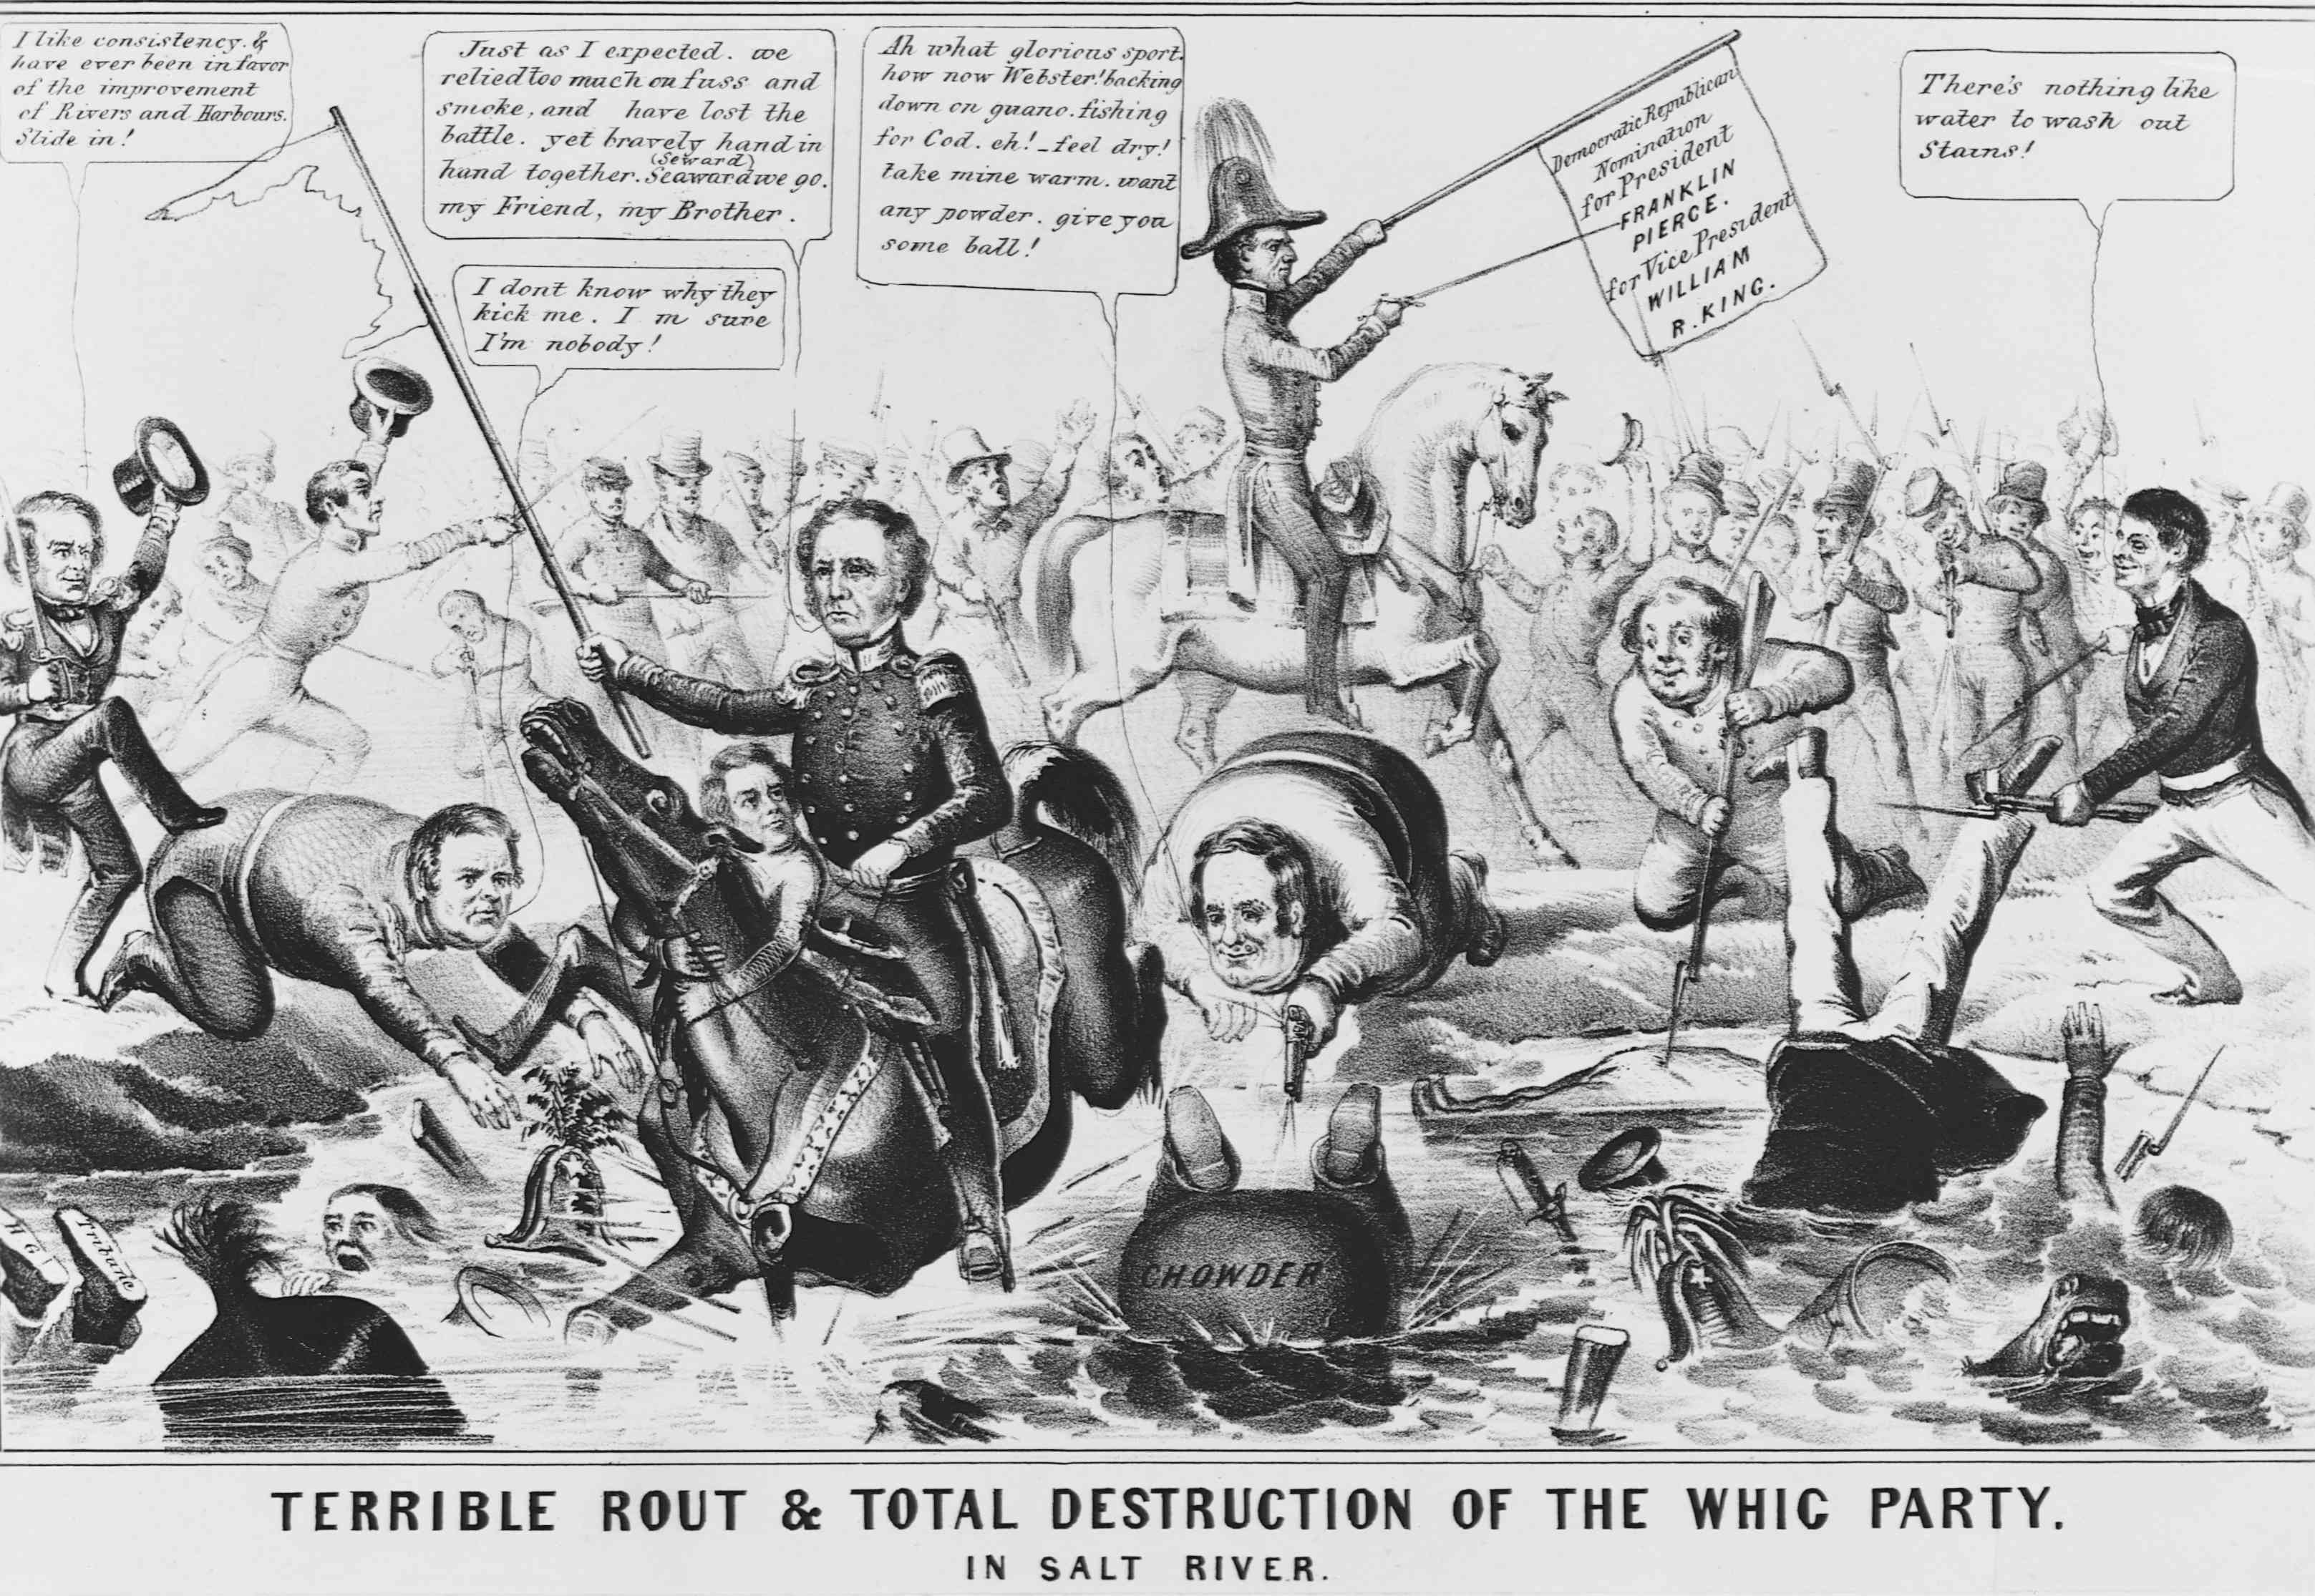 Political cartoon depicting the destruction of the Whig Party